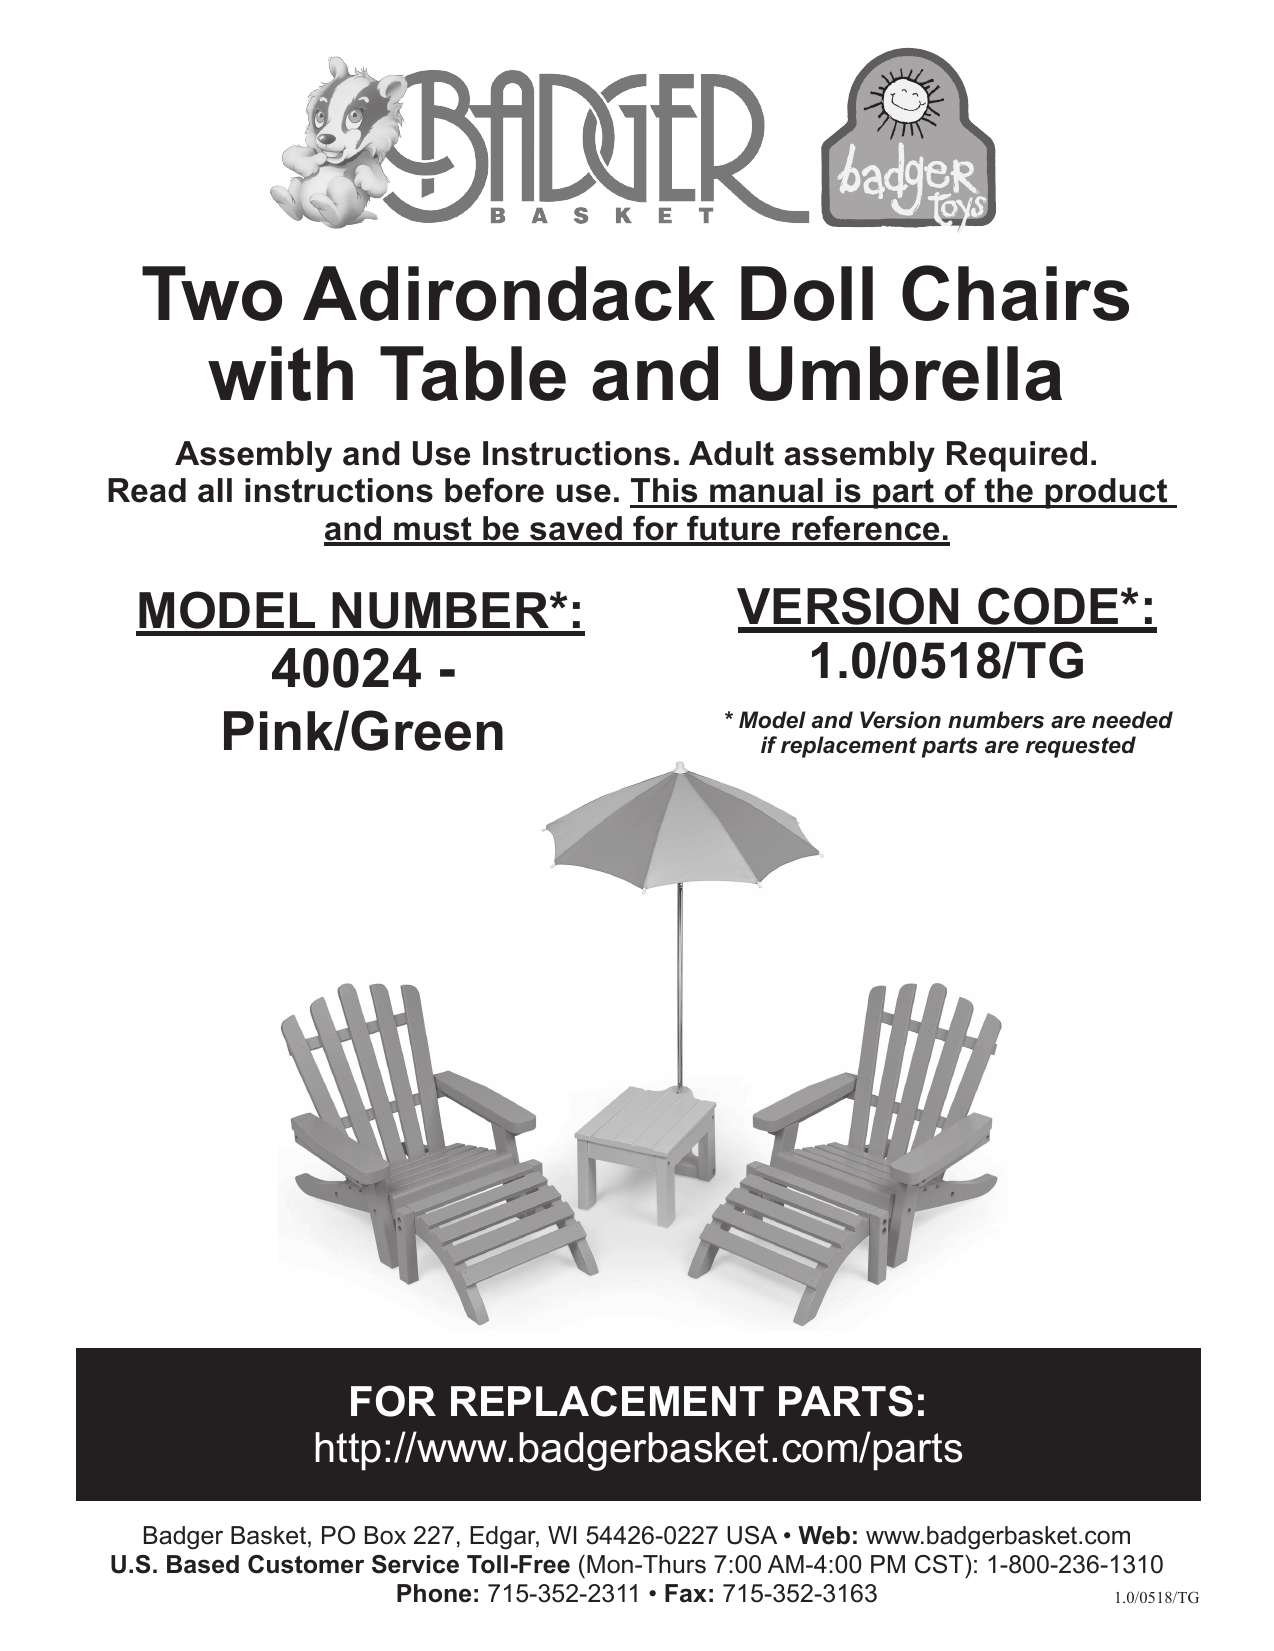 Badger Basket 40024 Two Adirondack Doll Chairs Assembly